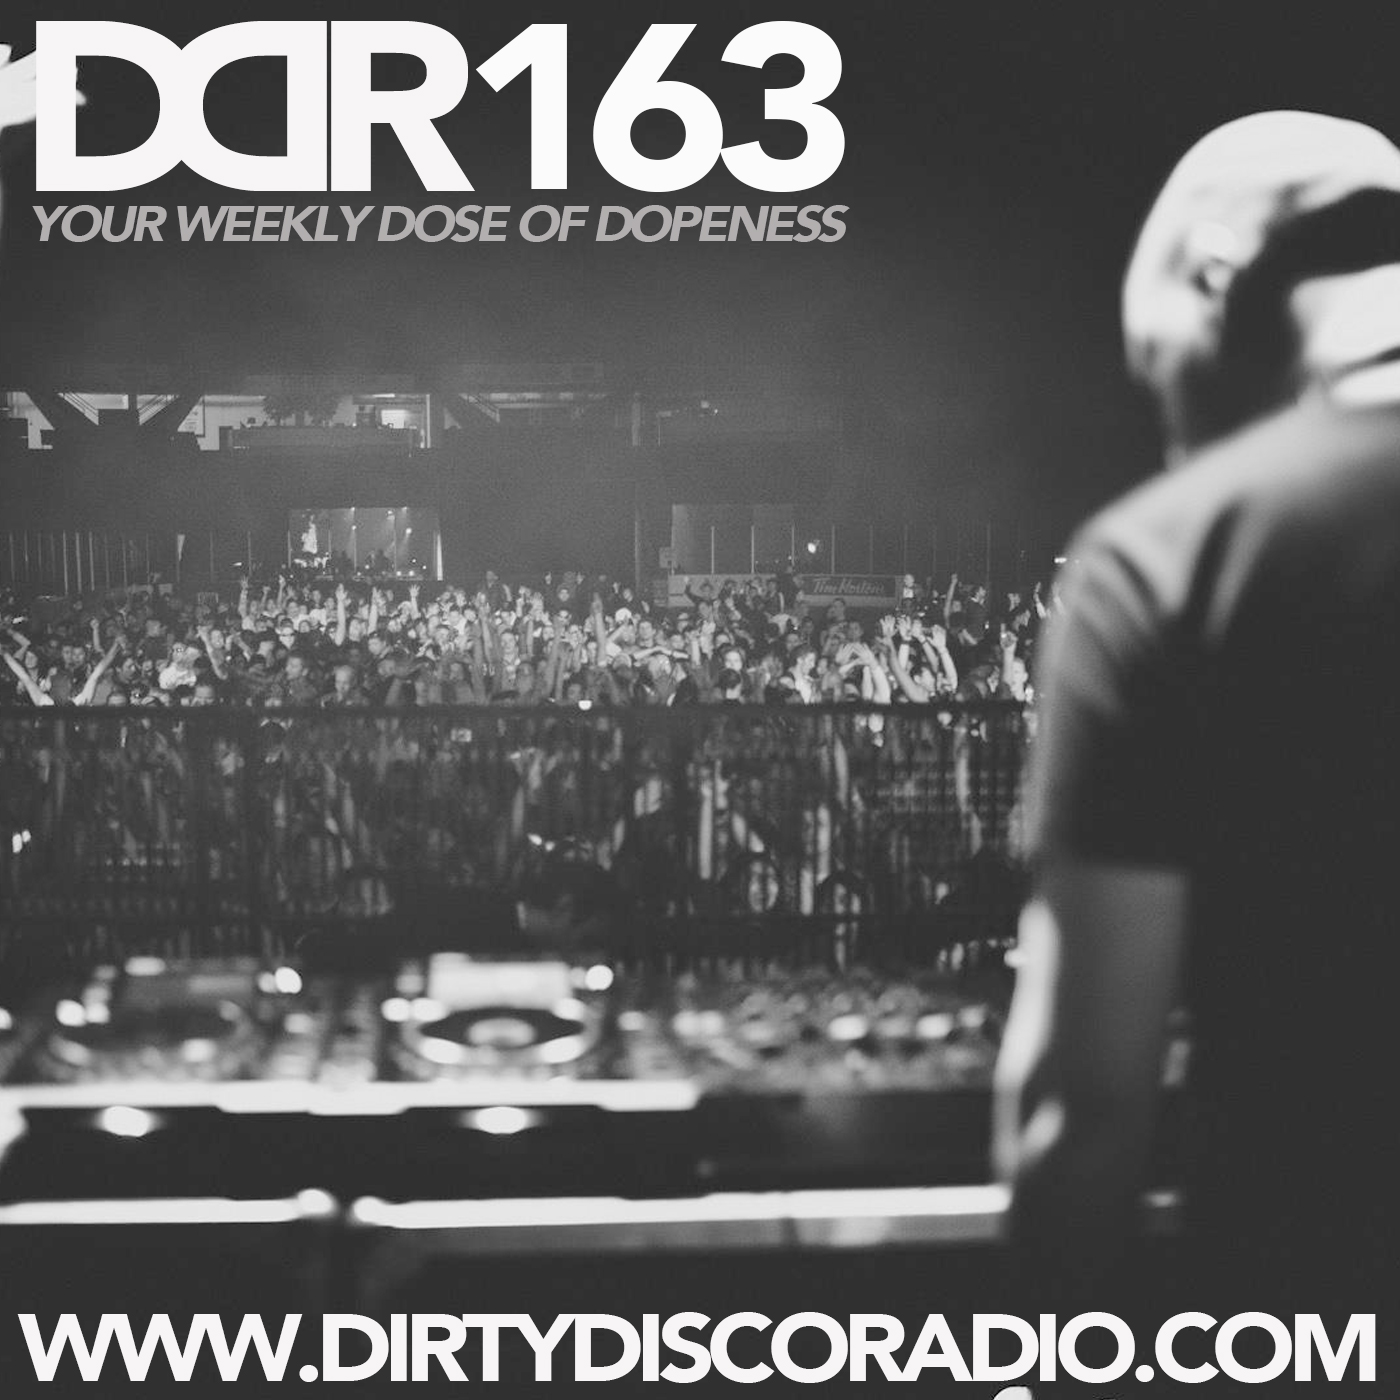 Dirty Disco radio 163